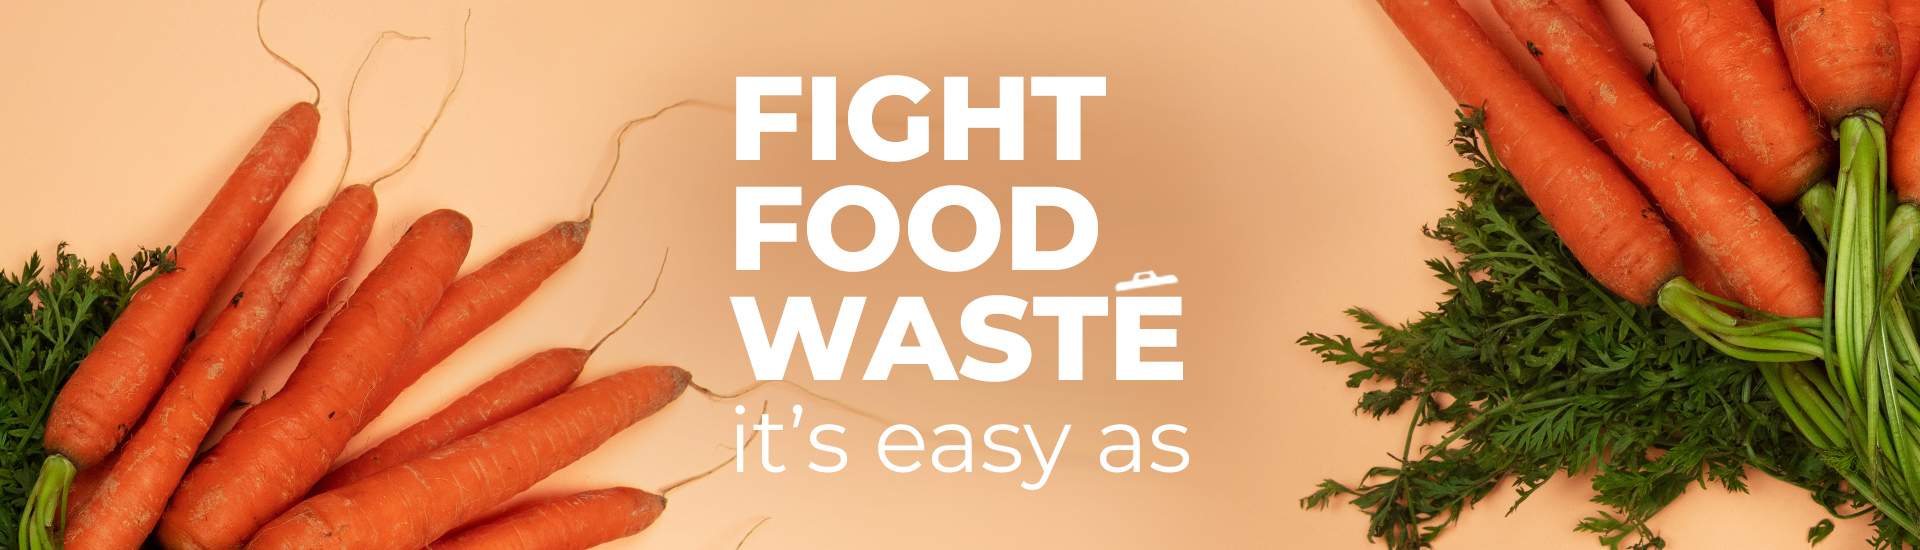 Fight food waste, it's easy as, carrots in the background.